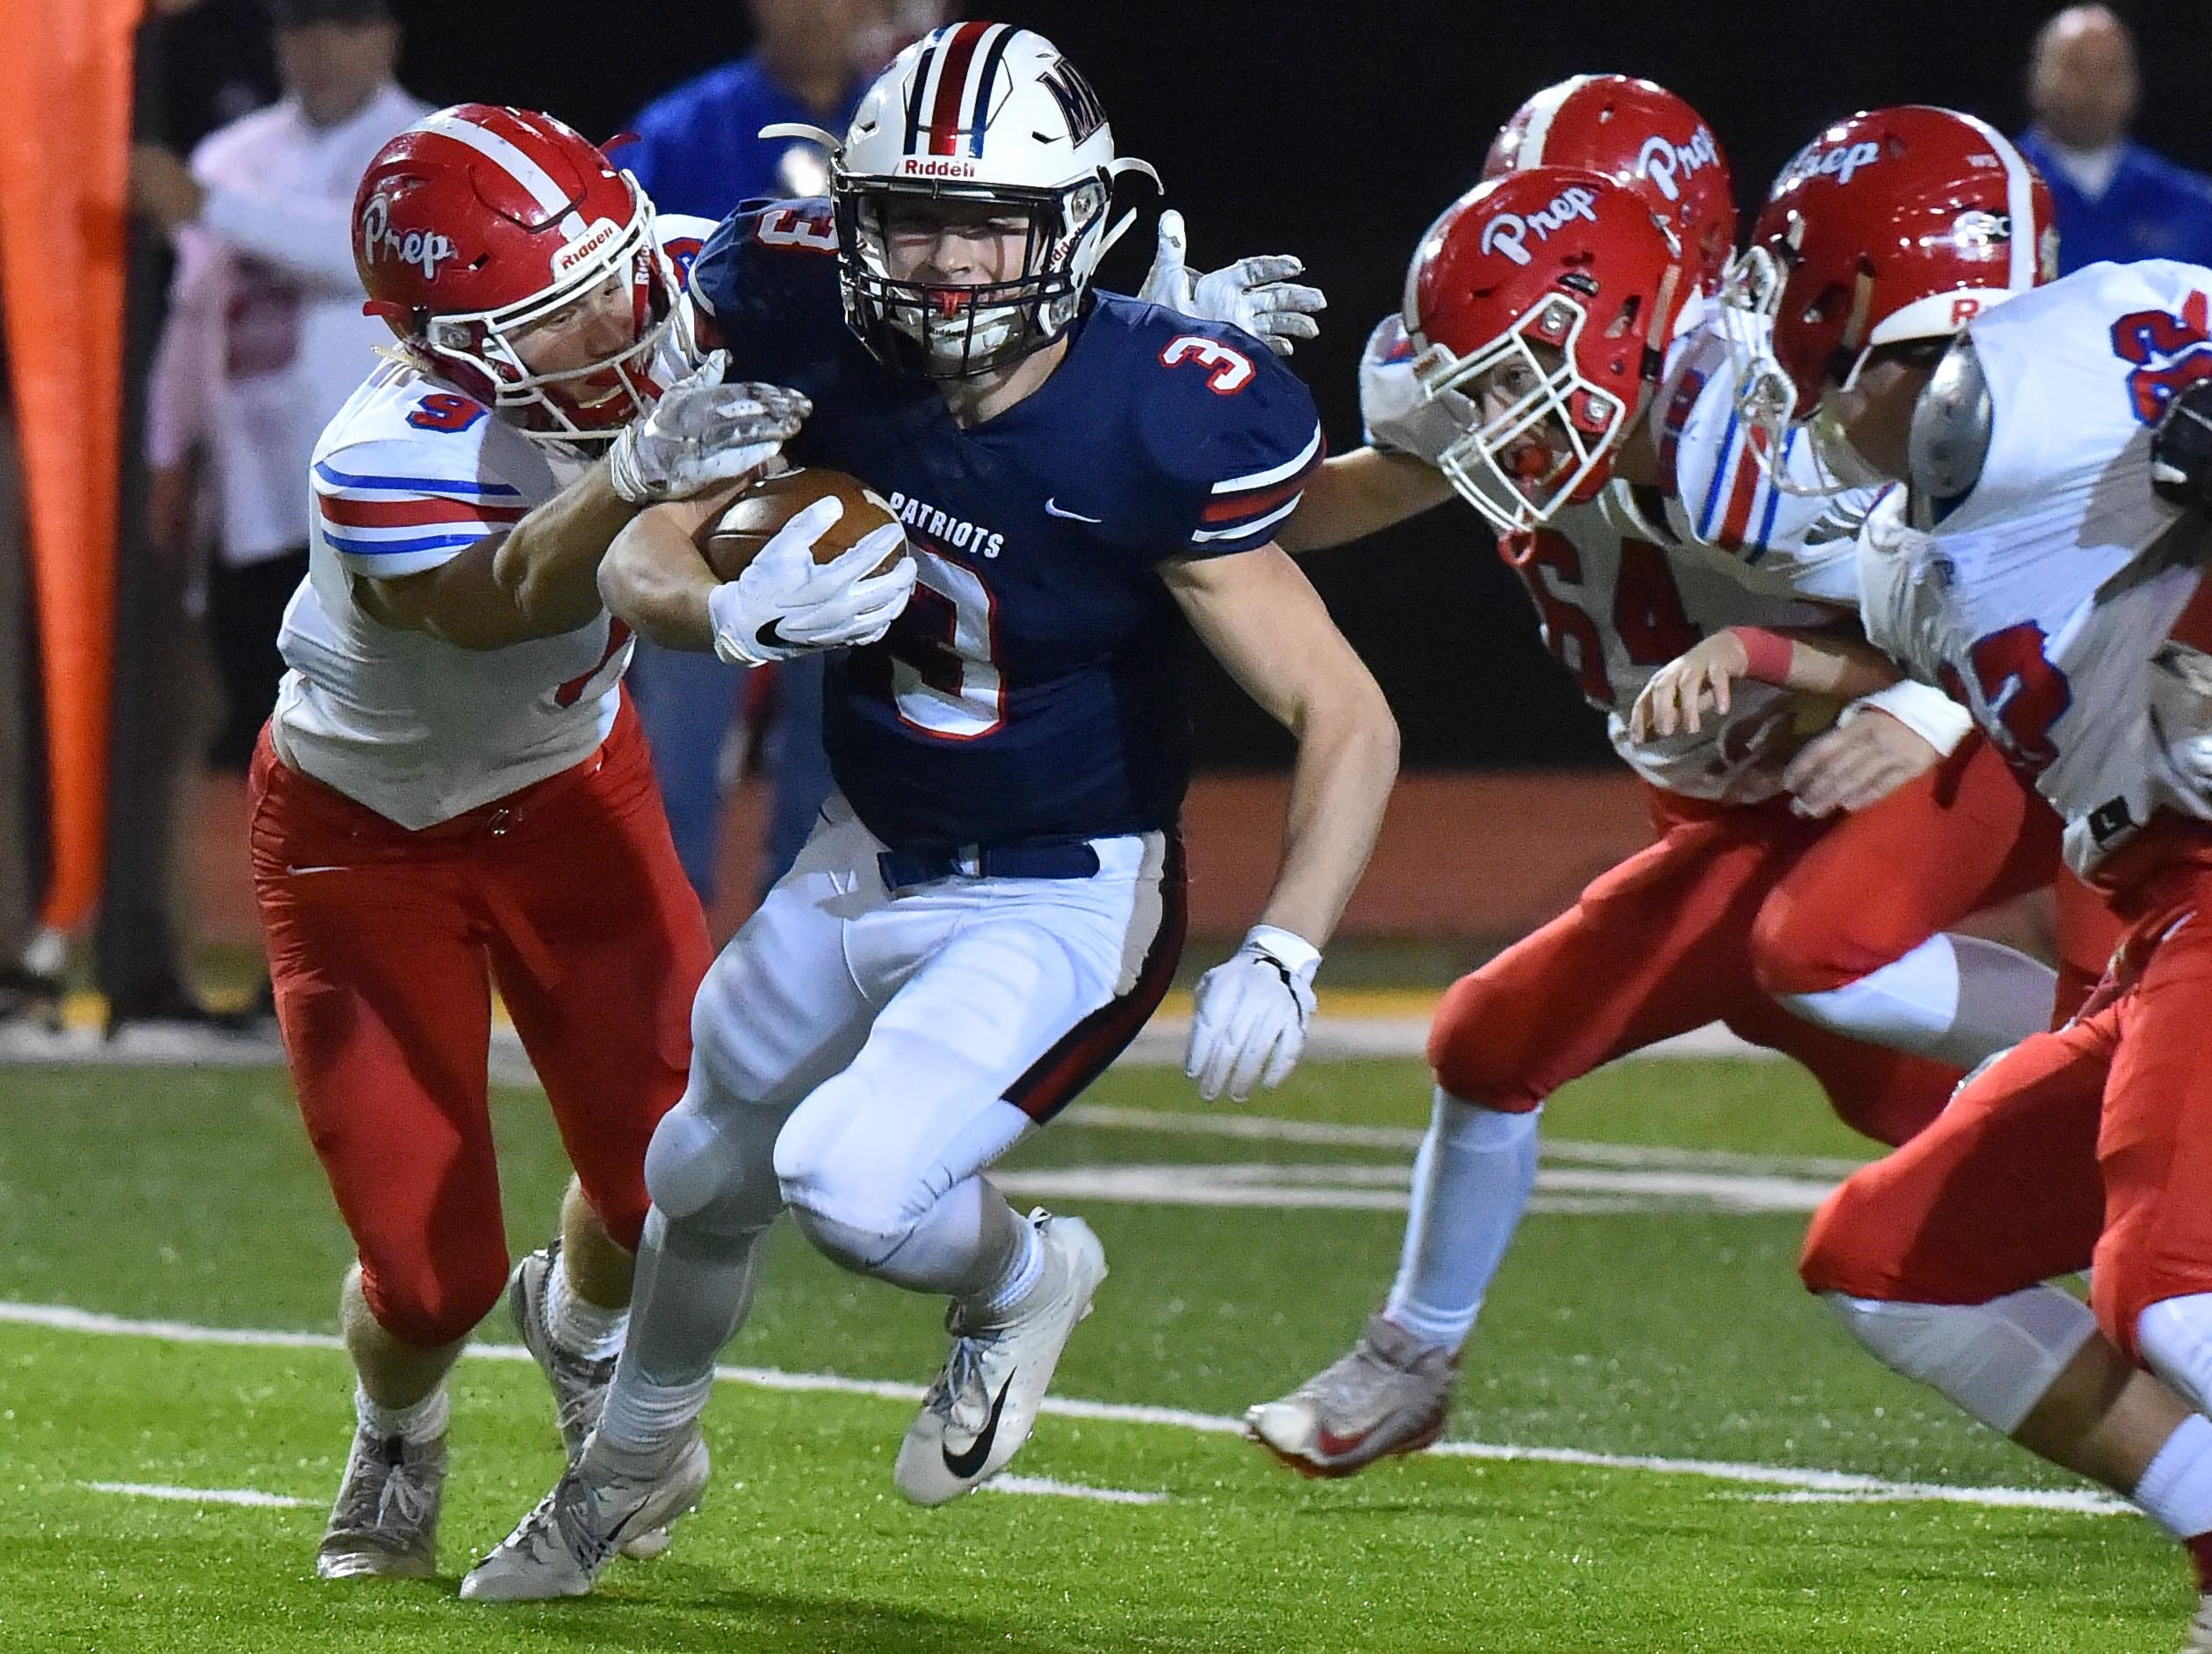 Madison Ridgeland Academy's William Milam (3) runs the ball against Jackson Prep during the MAIS Class AAAA Championship Football game held at Jackson Academy in Jackson, MS, Thursday November 16, 2018.(Bob Smith-For The Clarion Ledger)